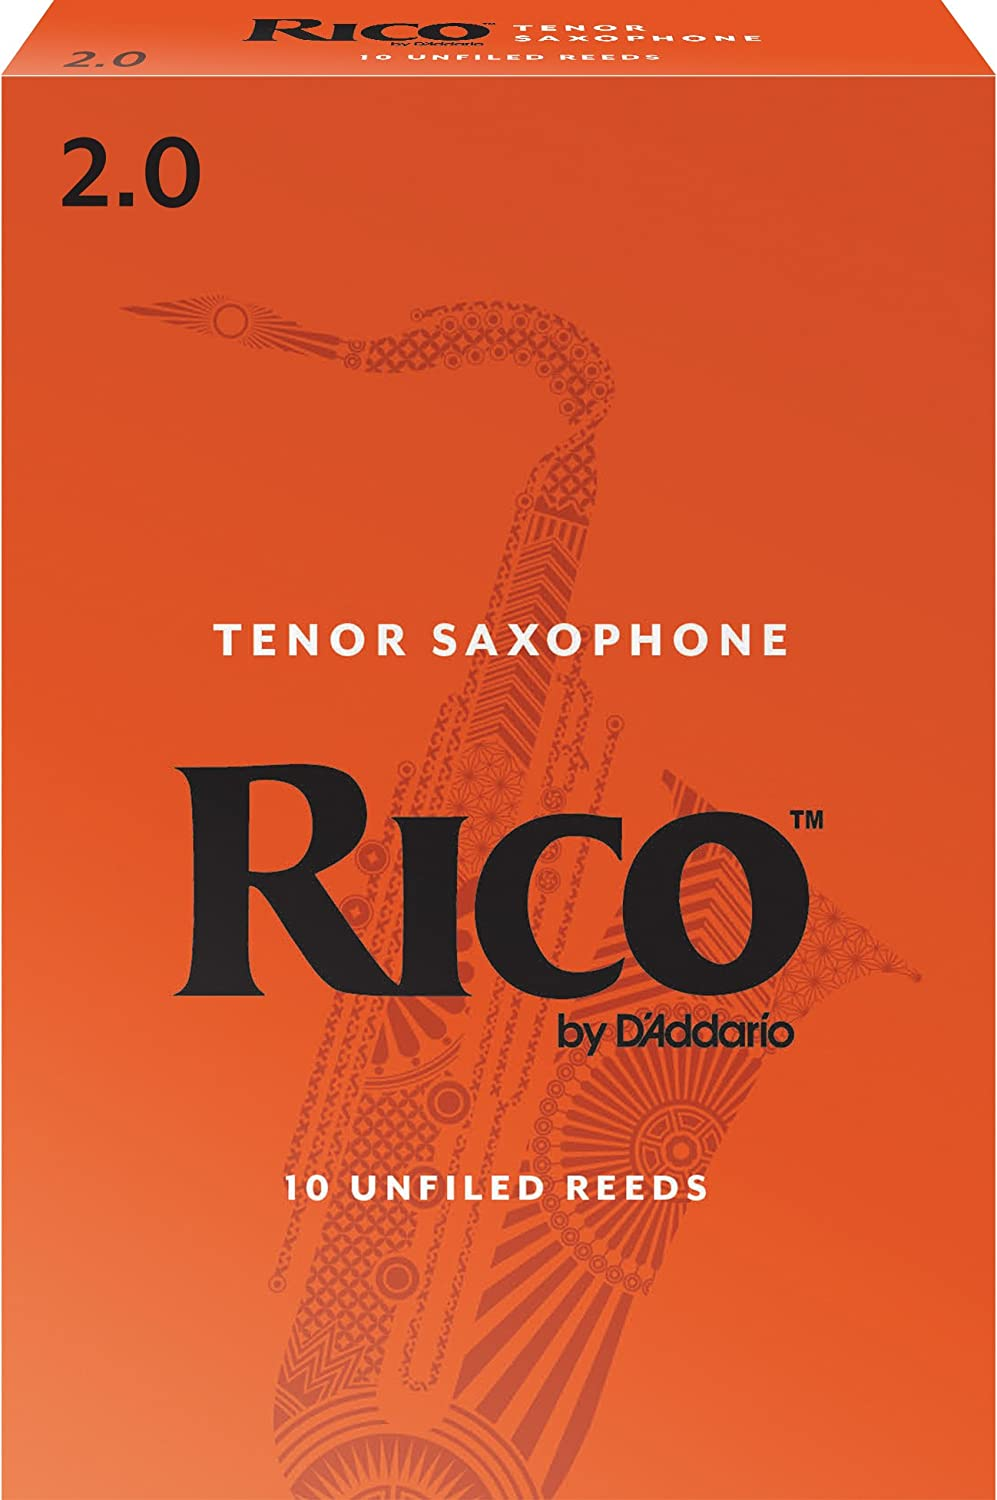 Rico by D'Addario RKA1025 Tenor Sax Reeds, Strength 2.5, 10-pack D'Addario &Co. Inc nats-9038843-12